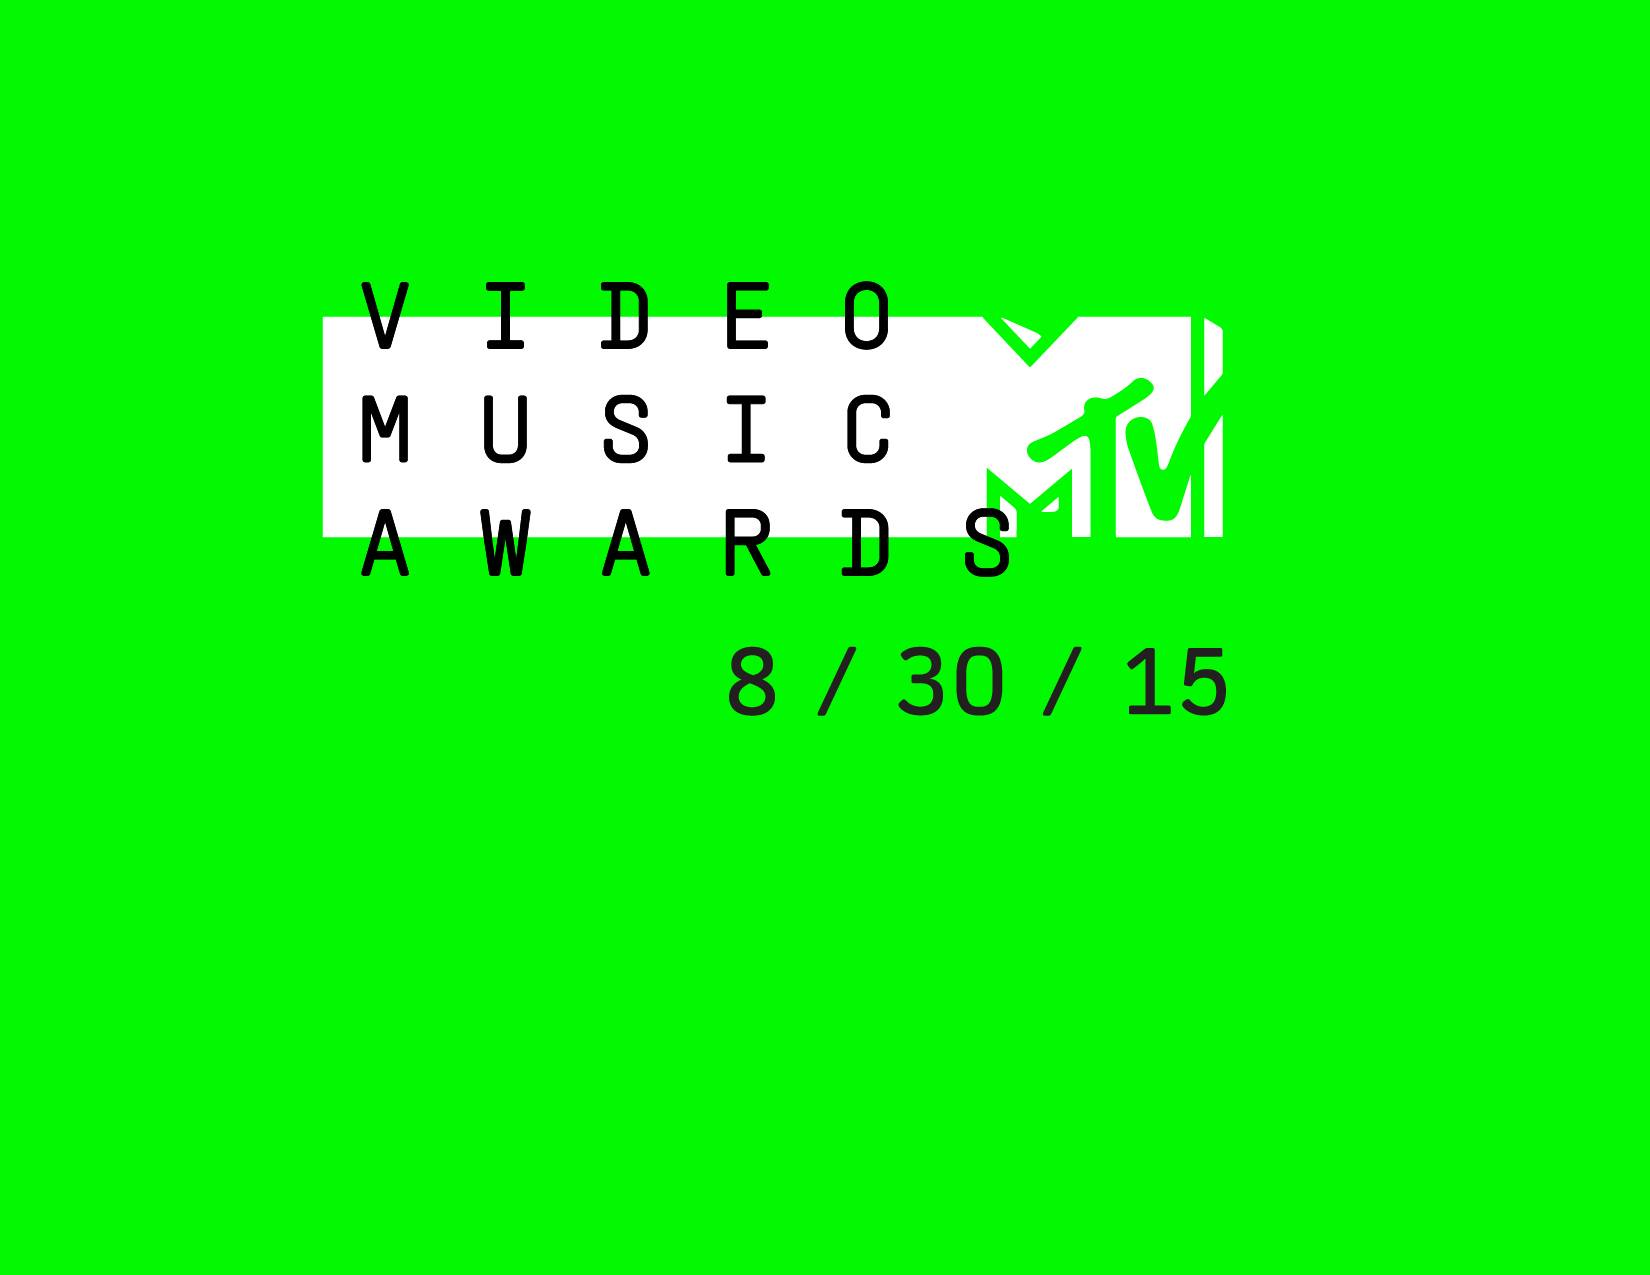 Das waren die MTV Video Music Awards 2015